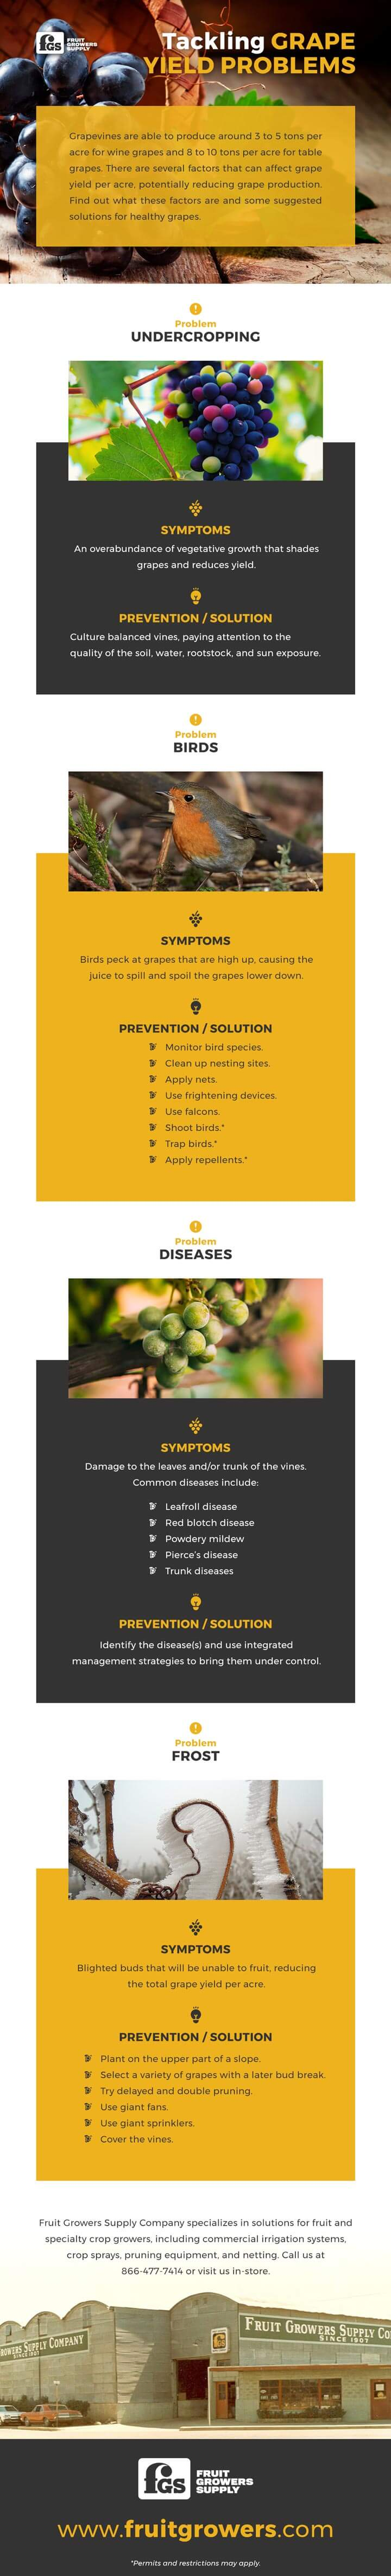 Tackling Grape Yield Problems FruitGrowers - Infographic